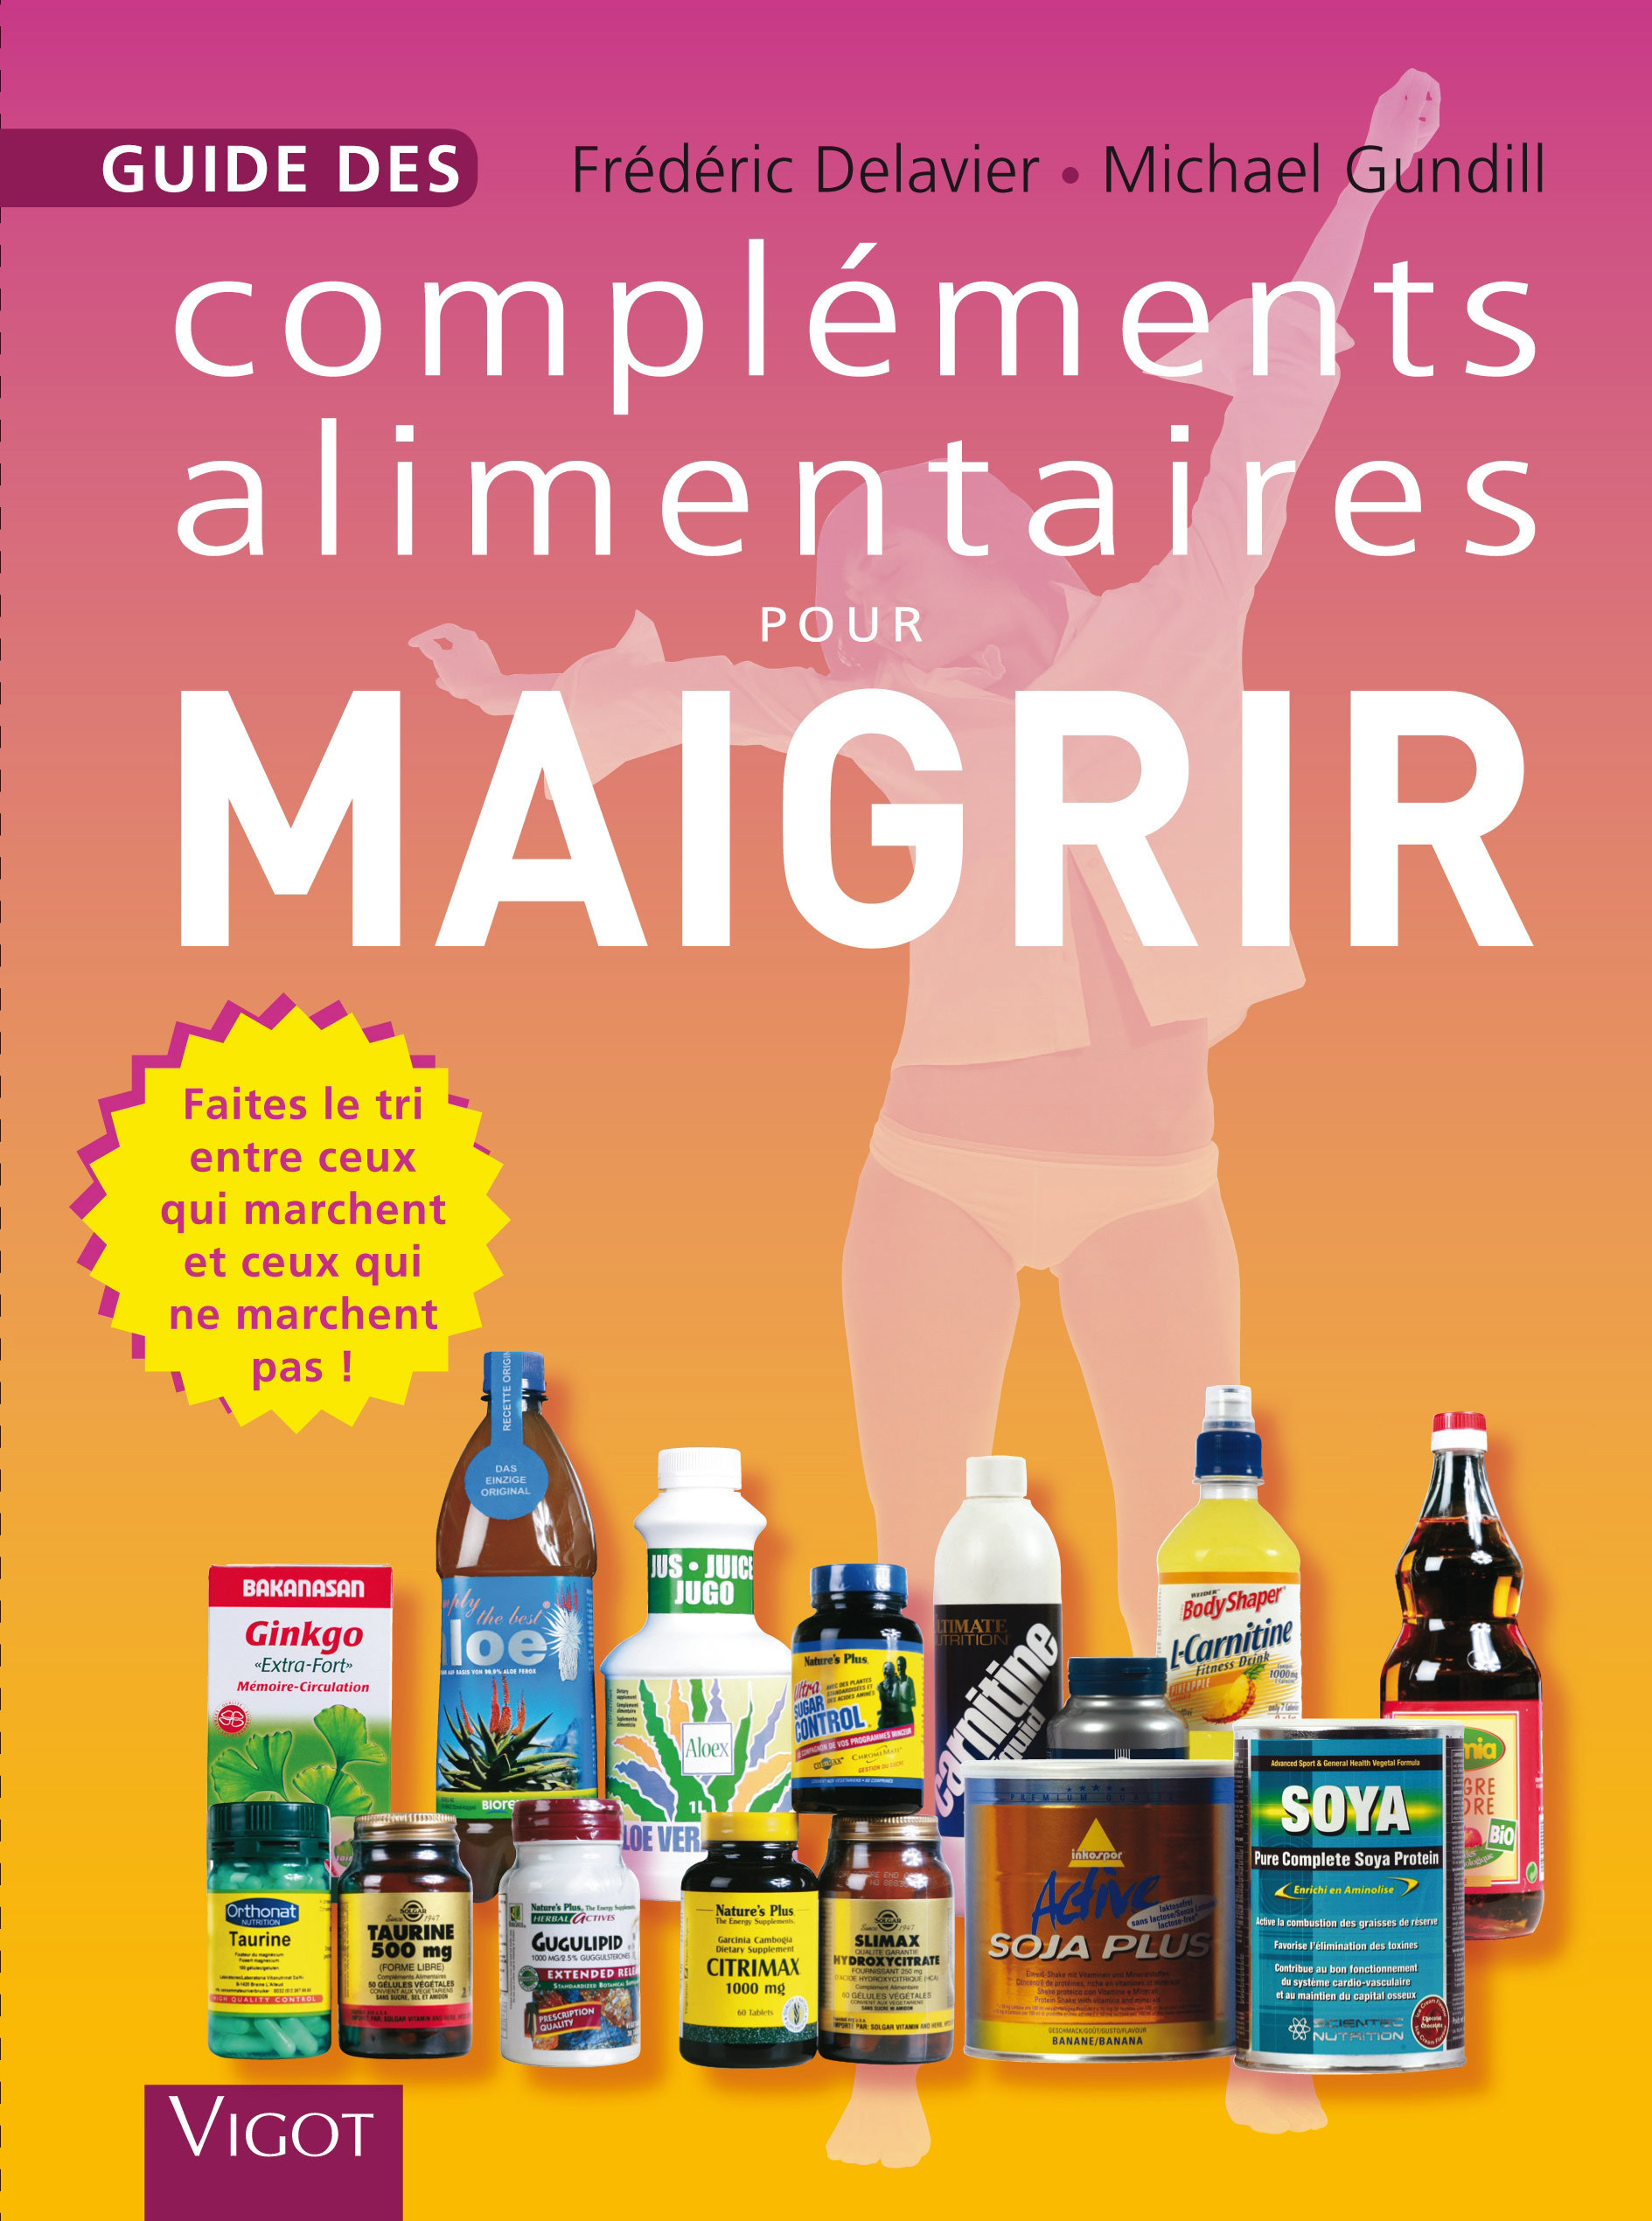 GUIDE COMPLEMENTS ALIMENTAIRES POUR